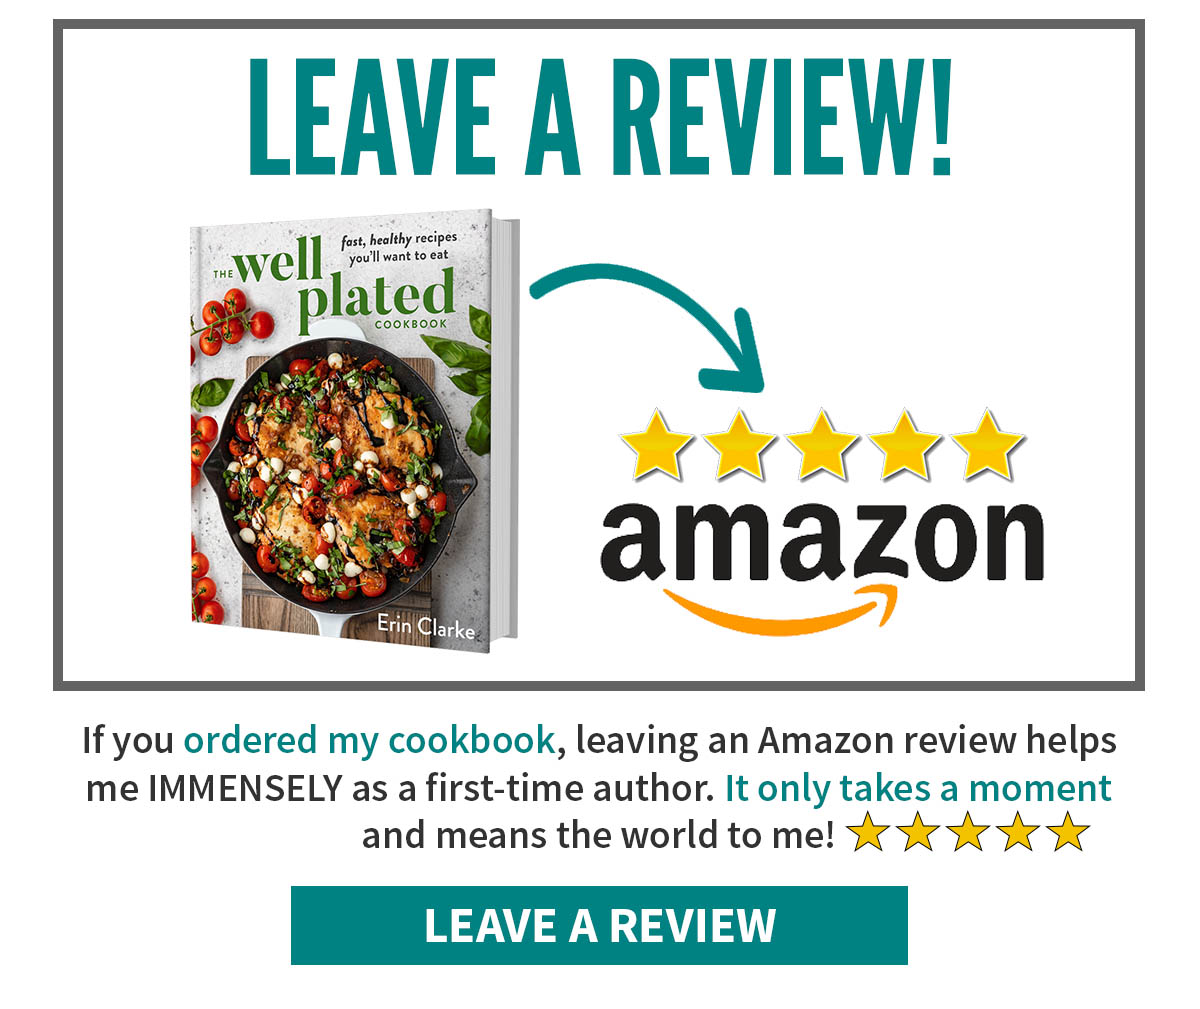 Request to leave a review for the Well Plated Cookbook